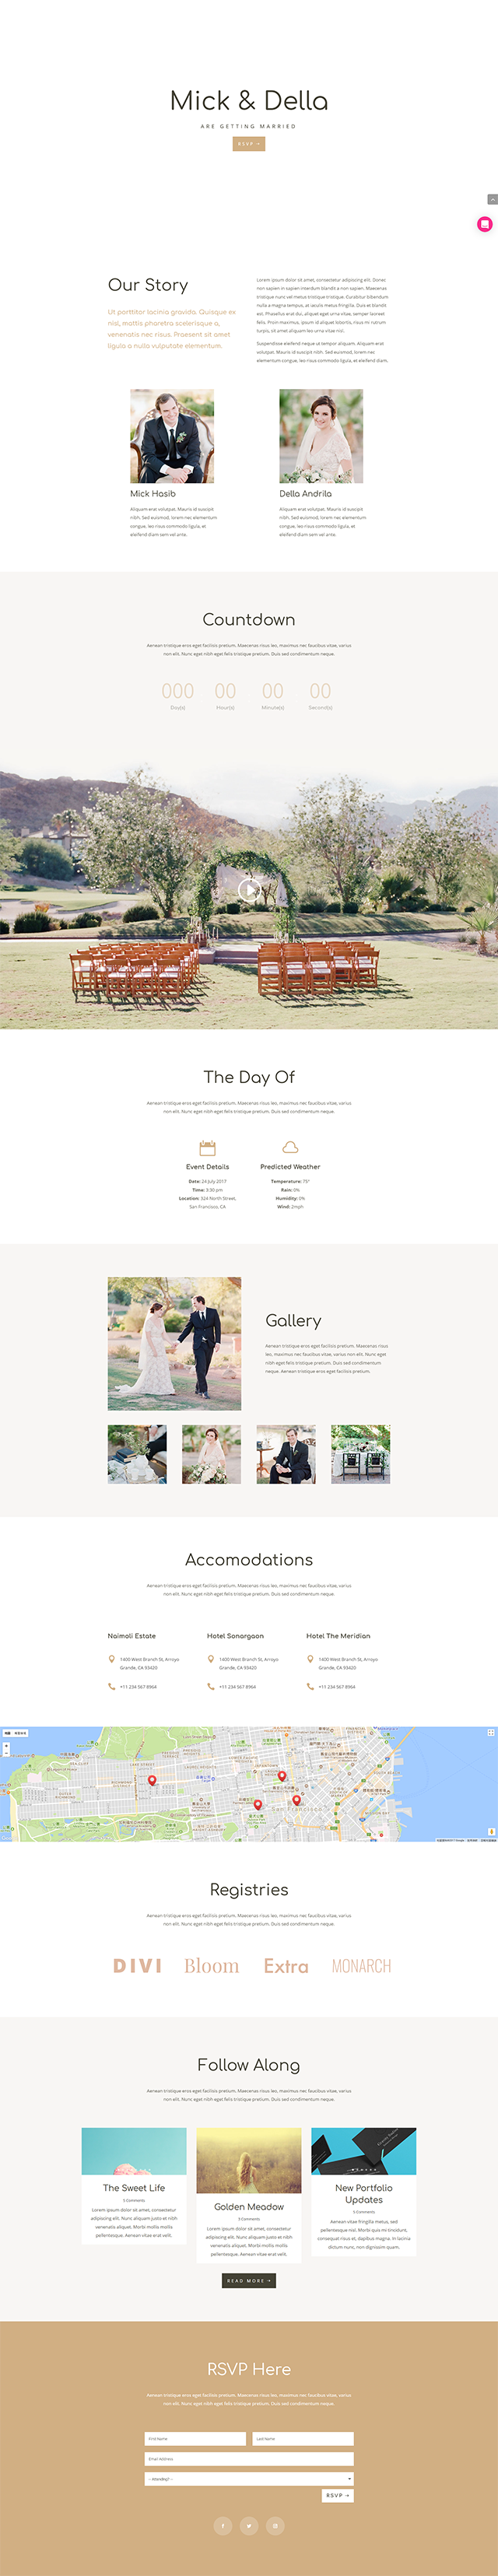 The Wedding Website Layout Pack 免費婚禮網站版型下載